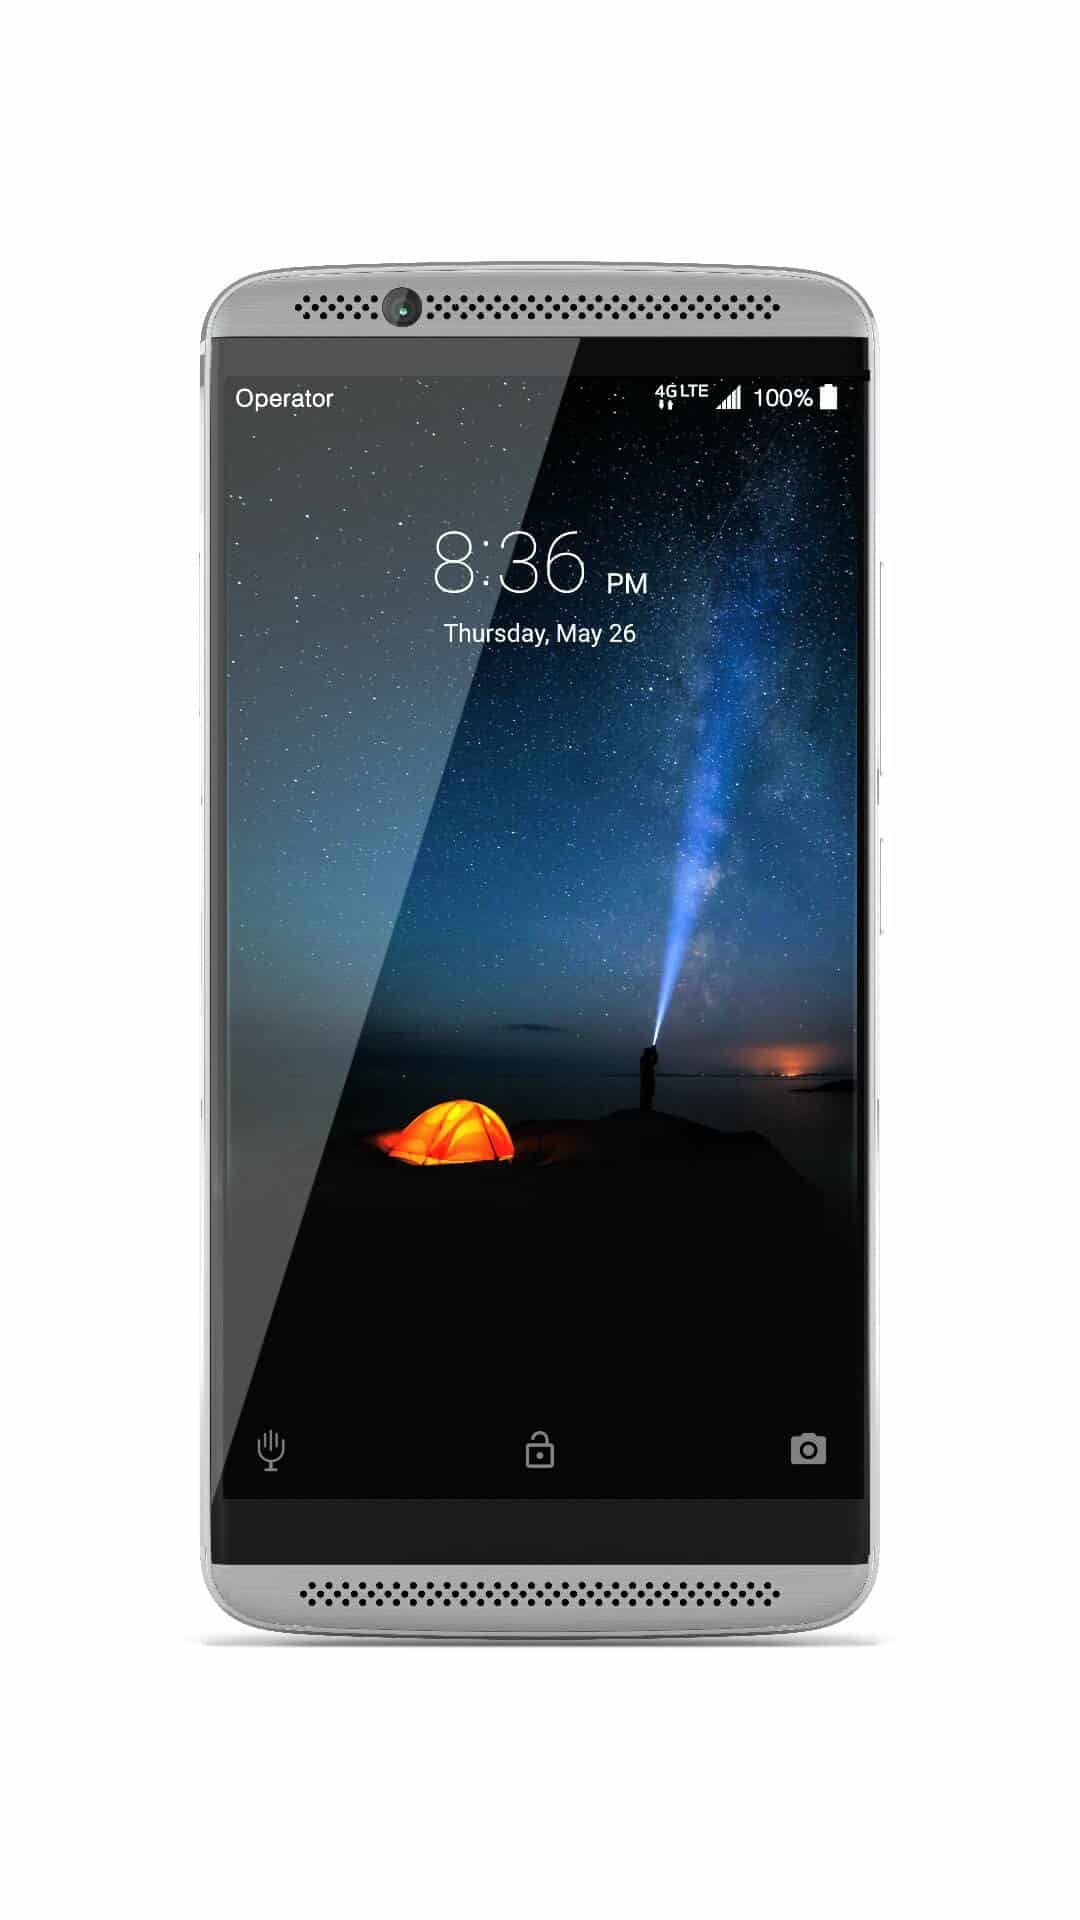 zte axon a1g122 Nougat operating system